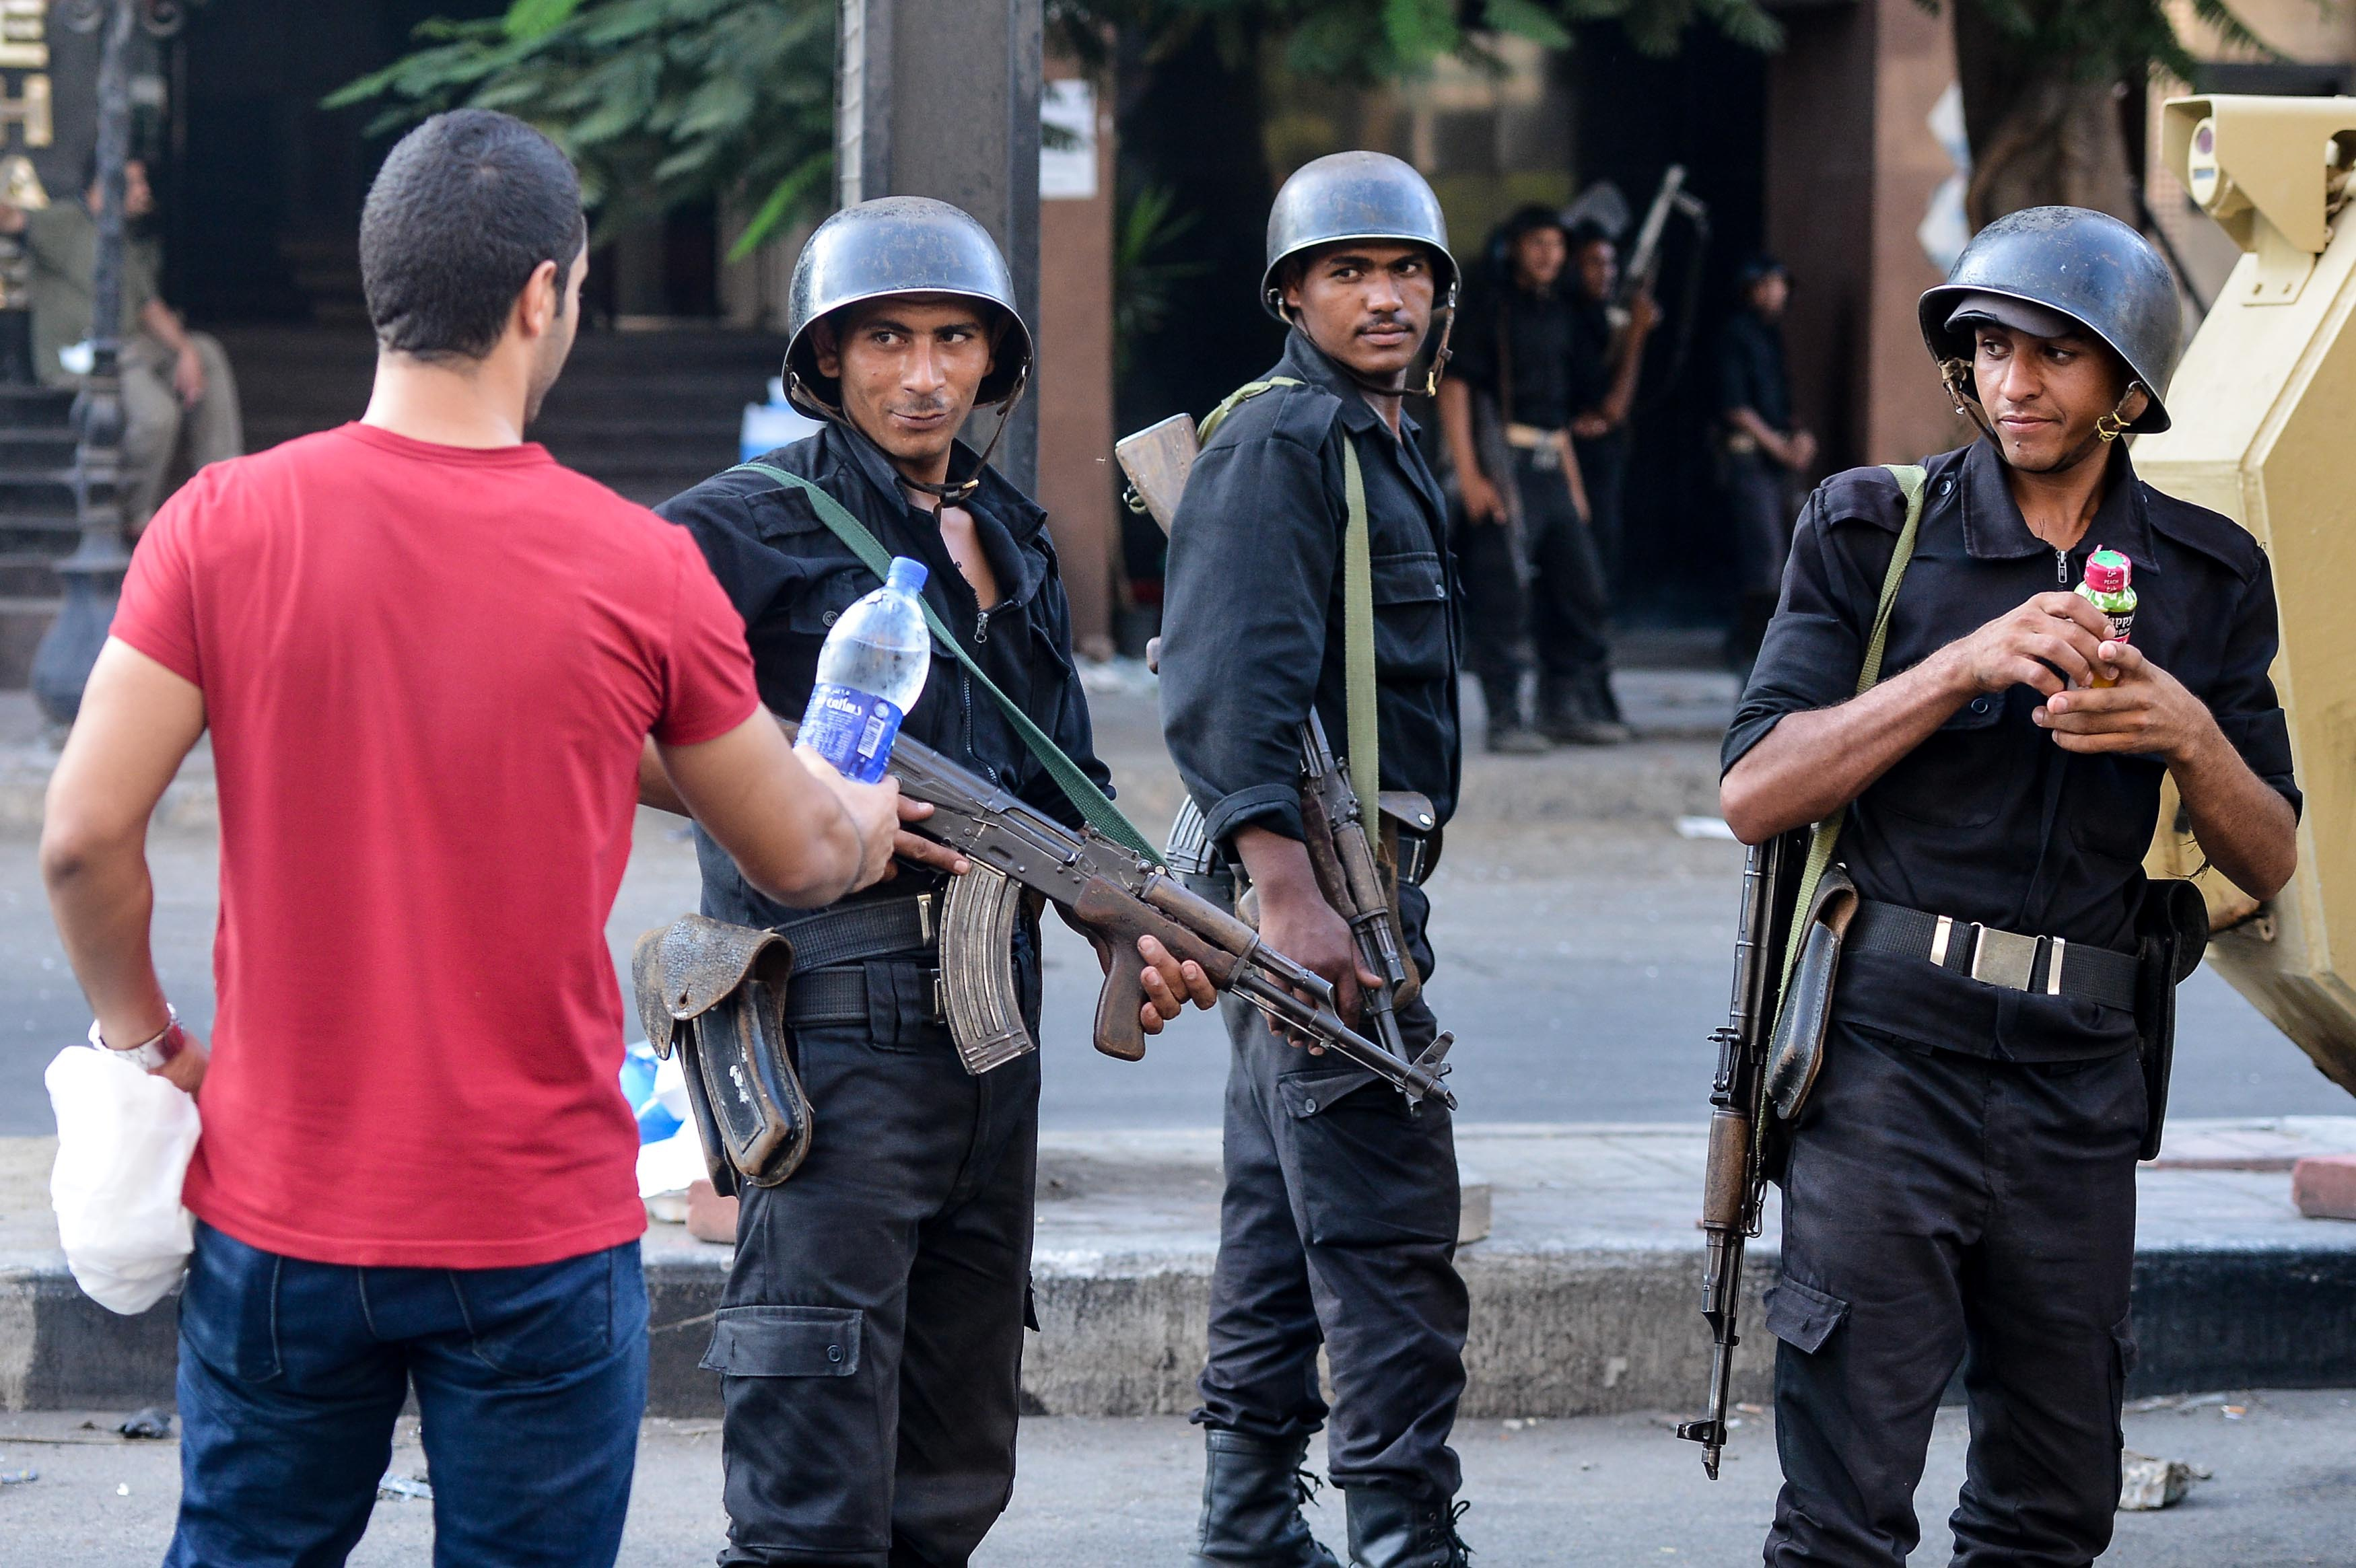 An Egyptian civilian (left) offers water to policemen during clashes with protesters in Cairo.